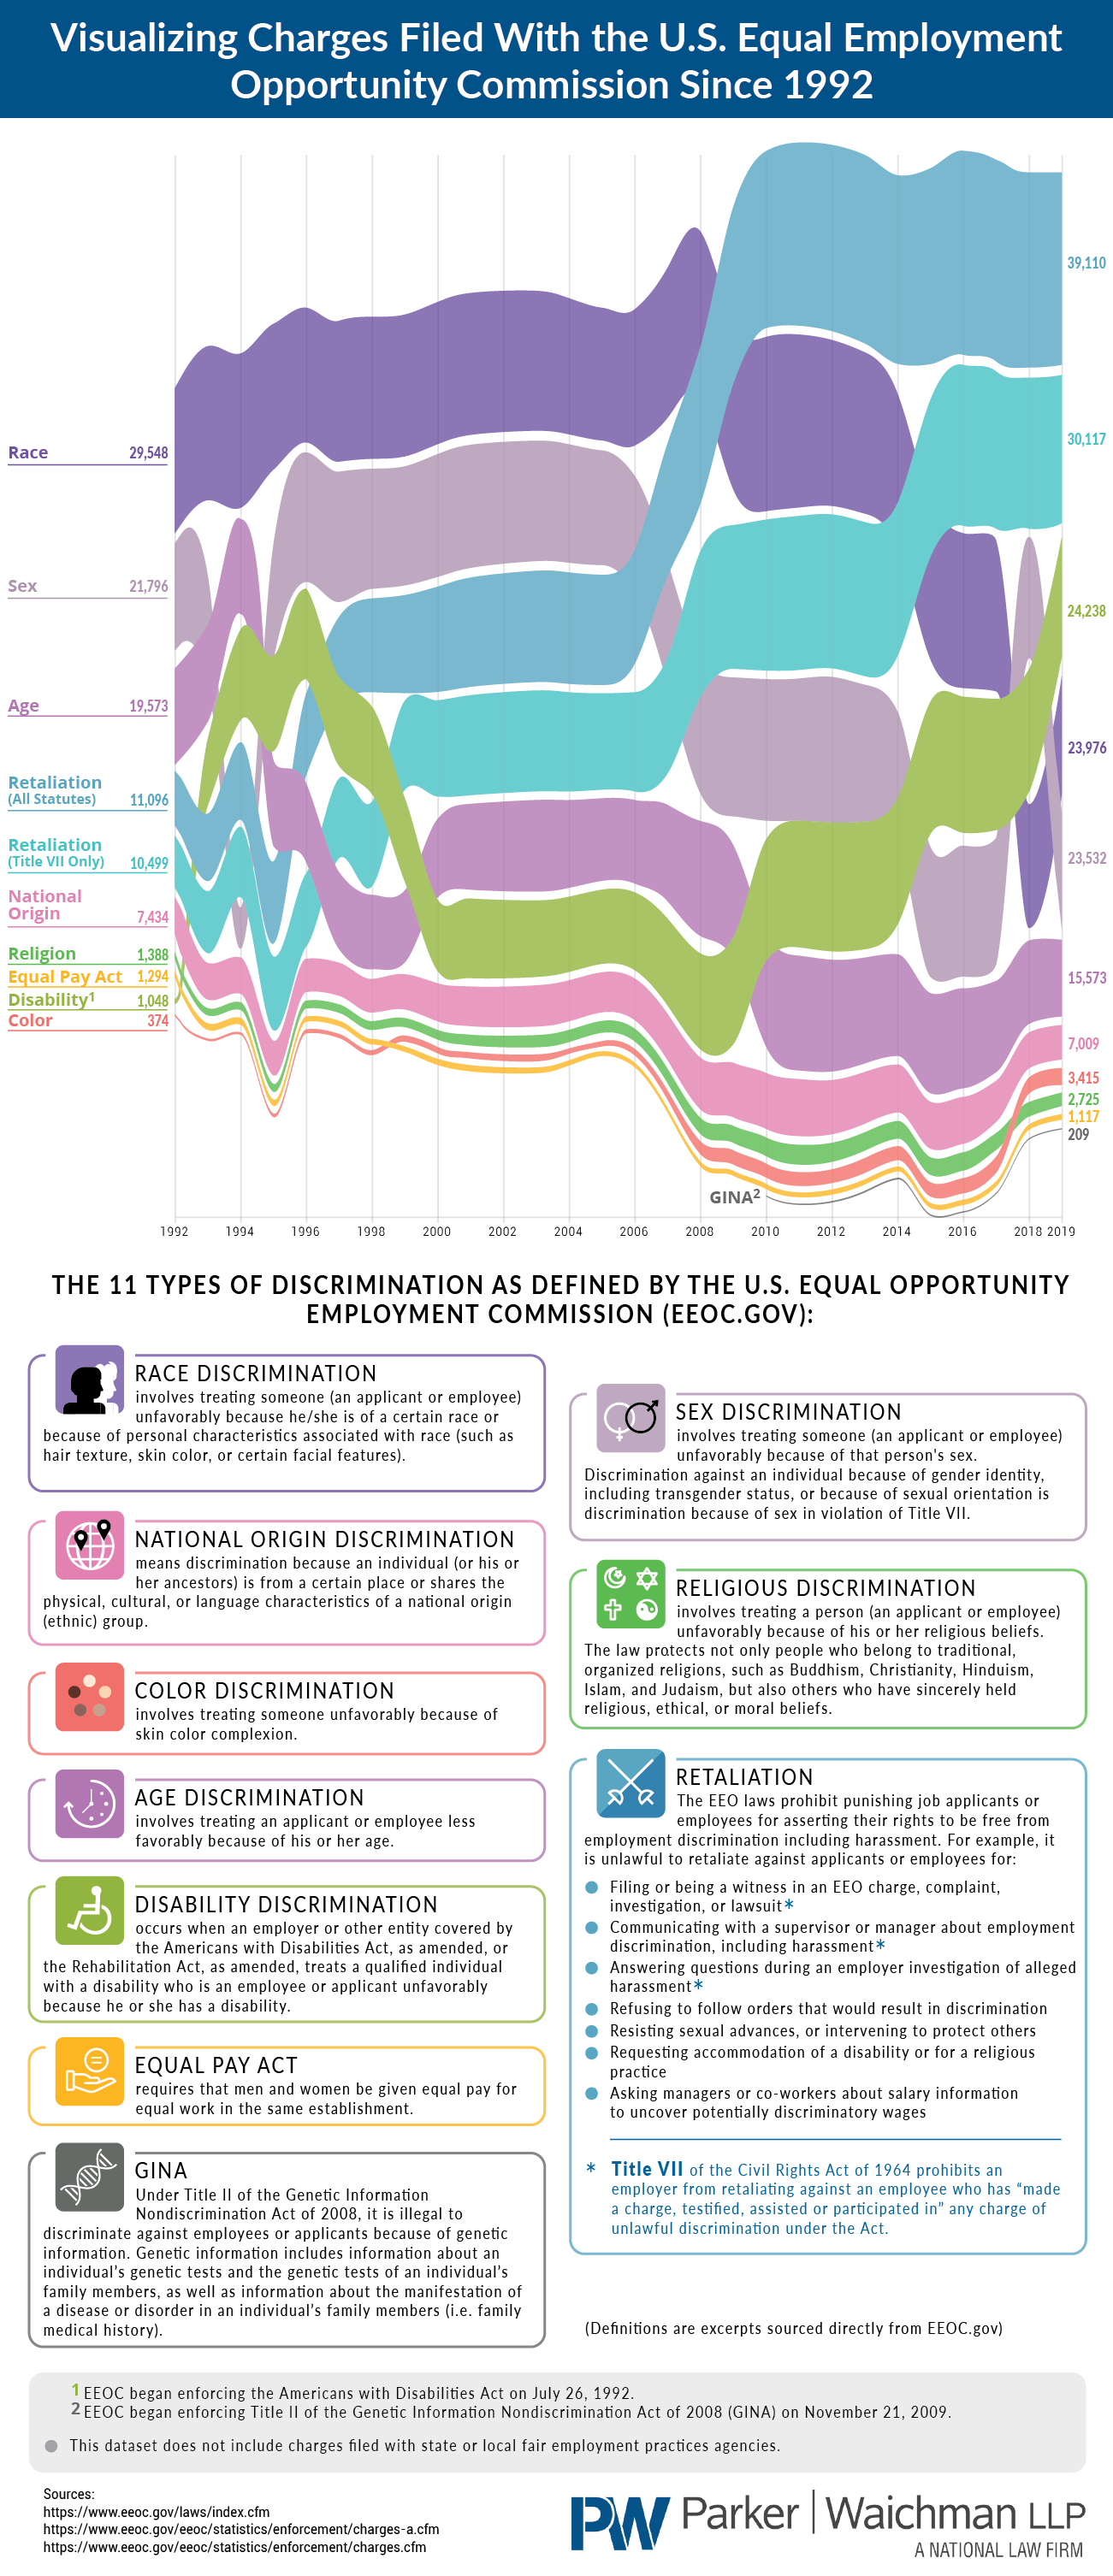 Visualizing charges filed with the u.s. equal employment opportunity commission since 1992